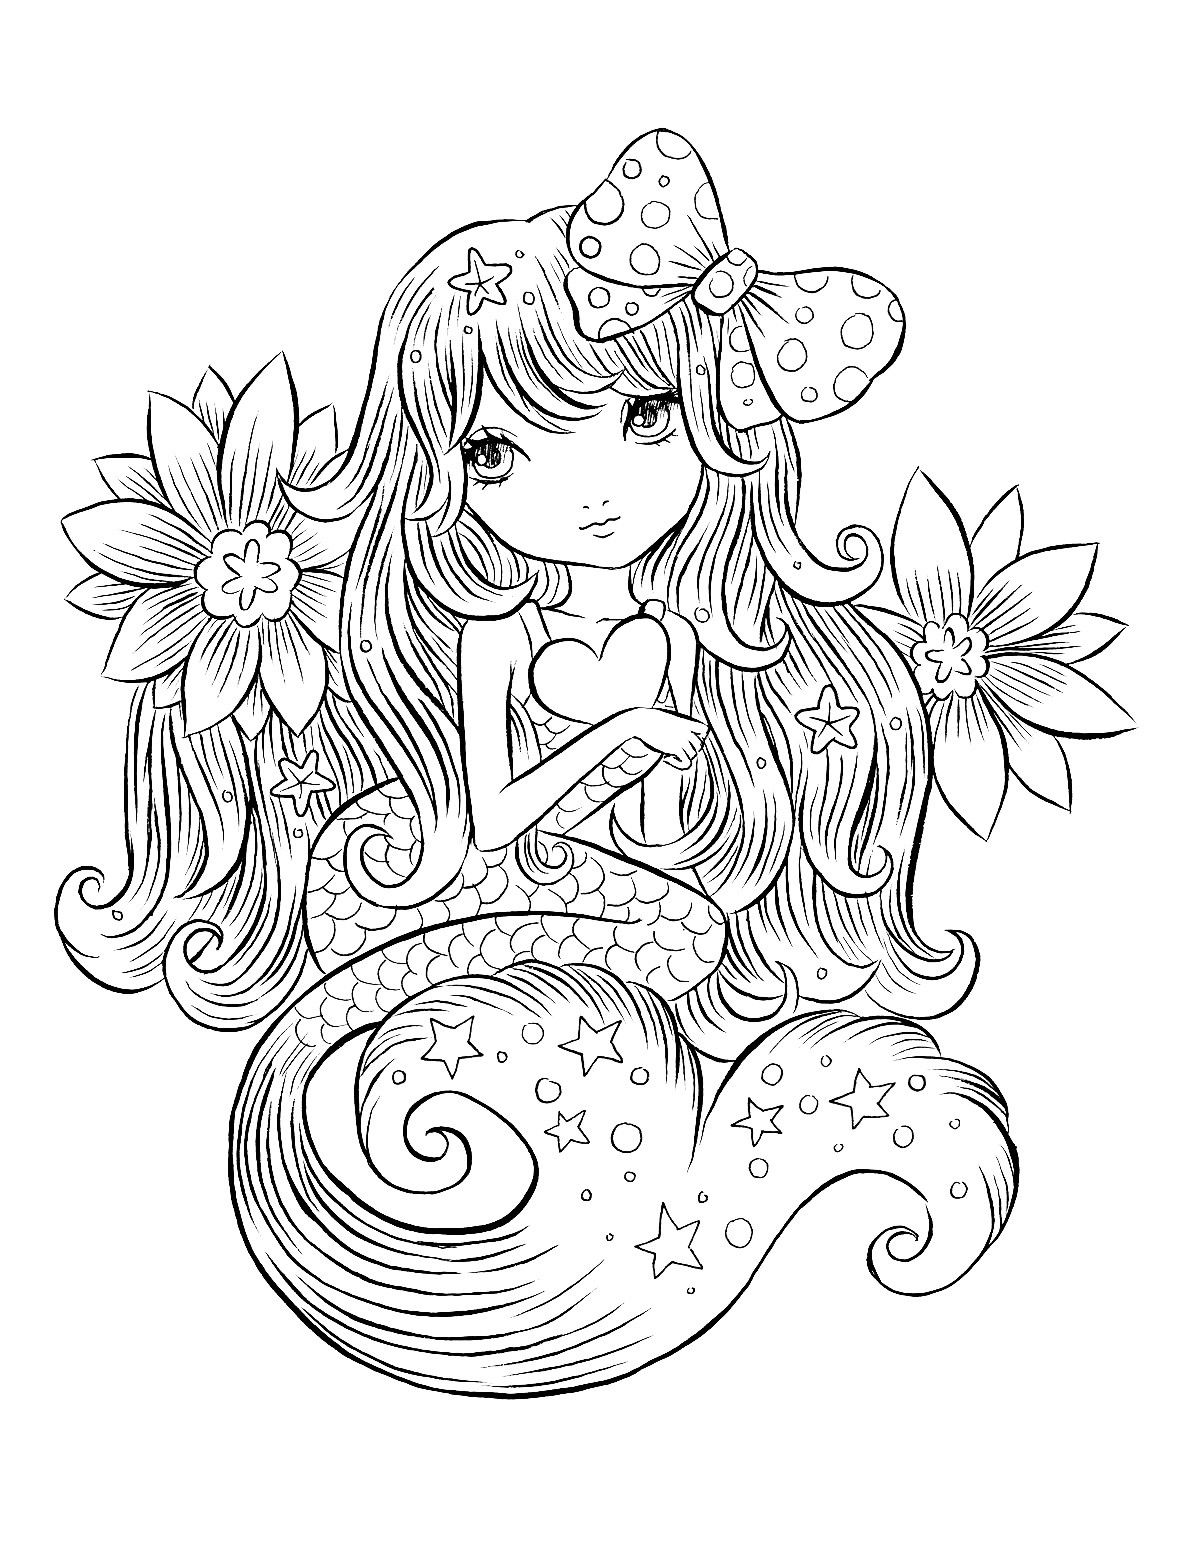 Pin By Nicole Brinston On Art Coloring Pages Mermaid Coloring Pages Coloring Book Art Mermaid Coloring Book